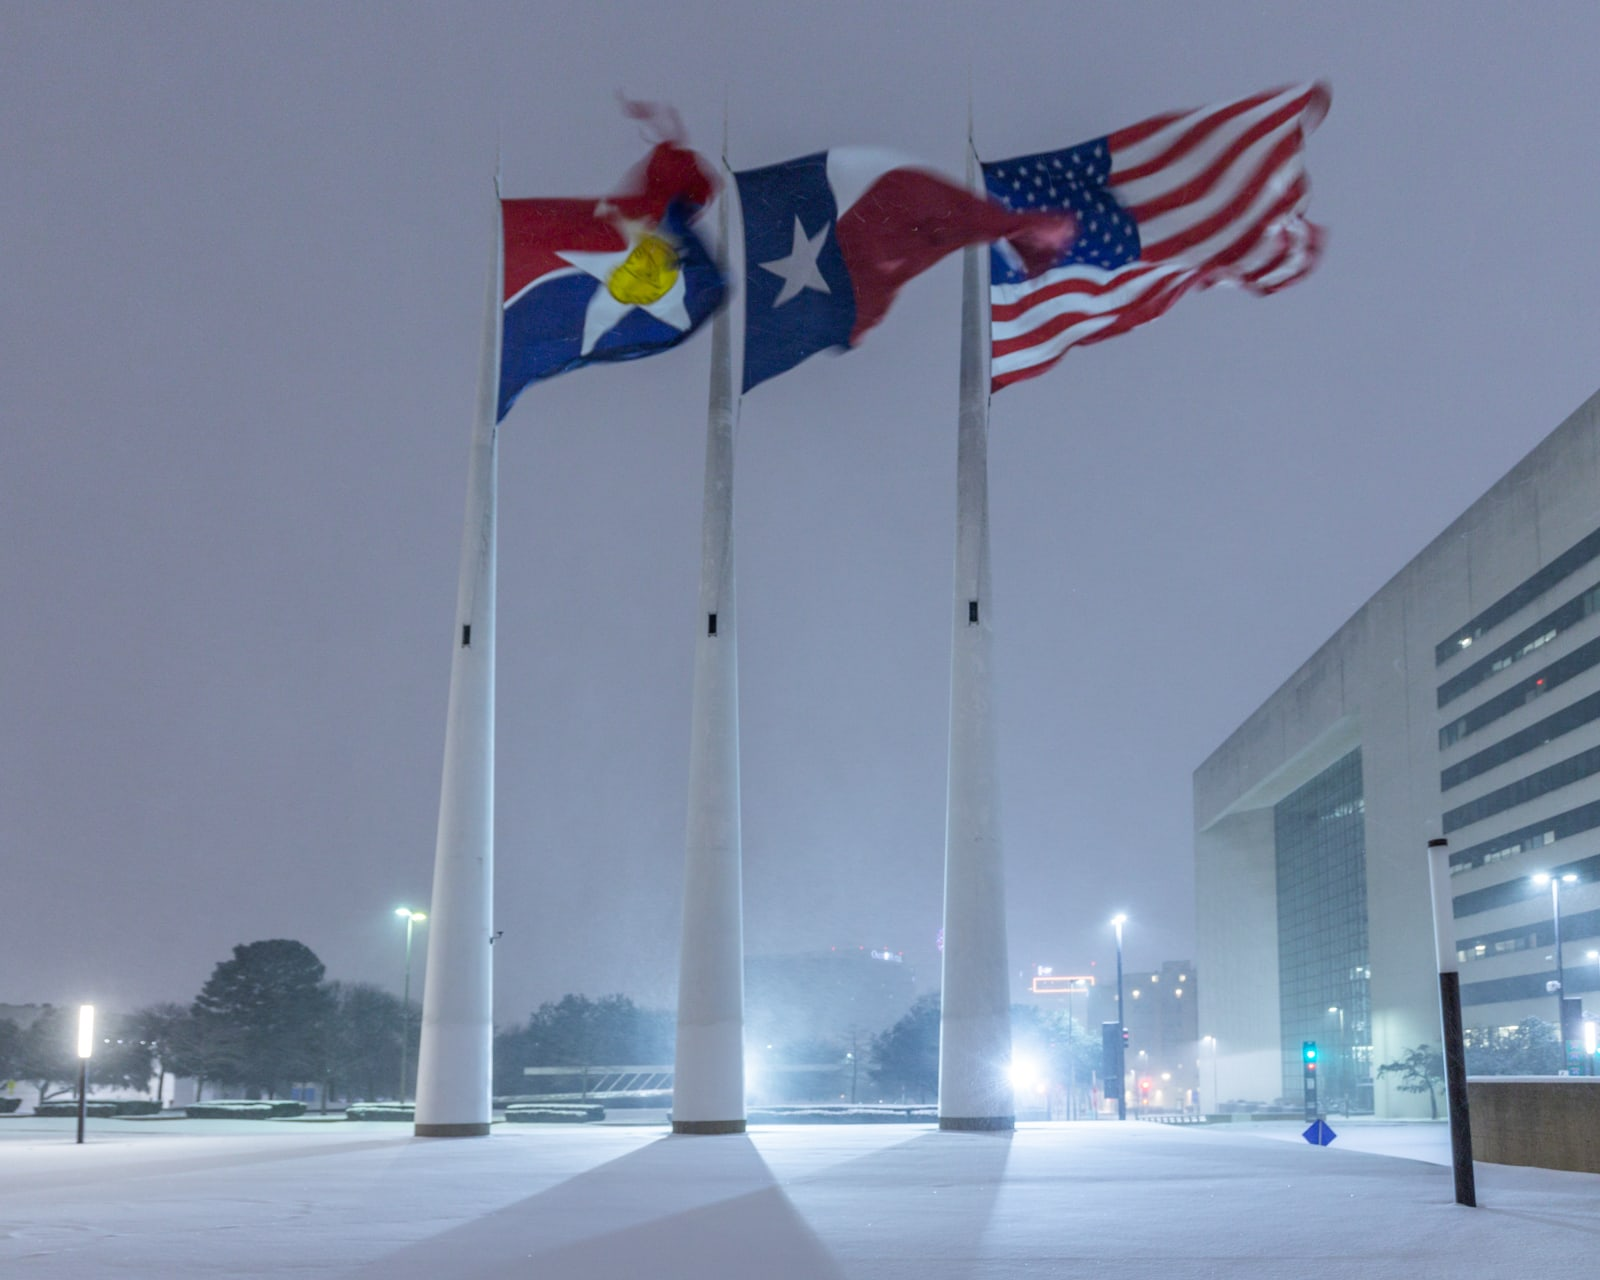 City of Dallas flag, Texas flag, and United States Flag blowing a snowstorm